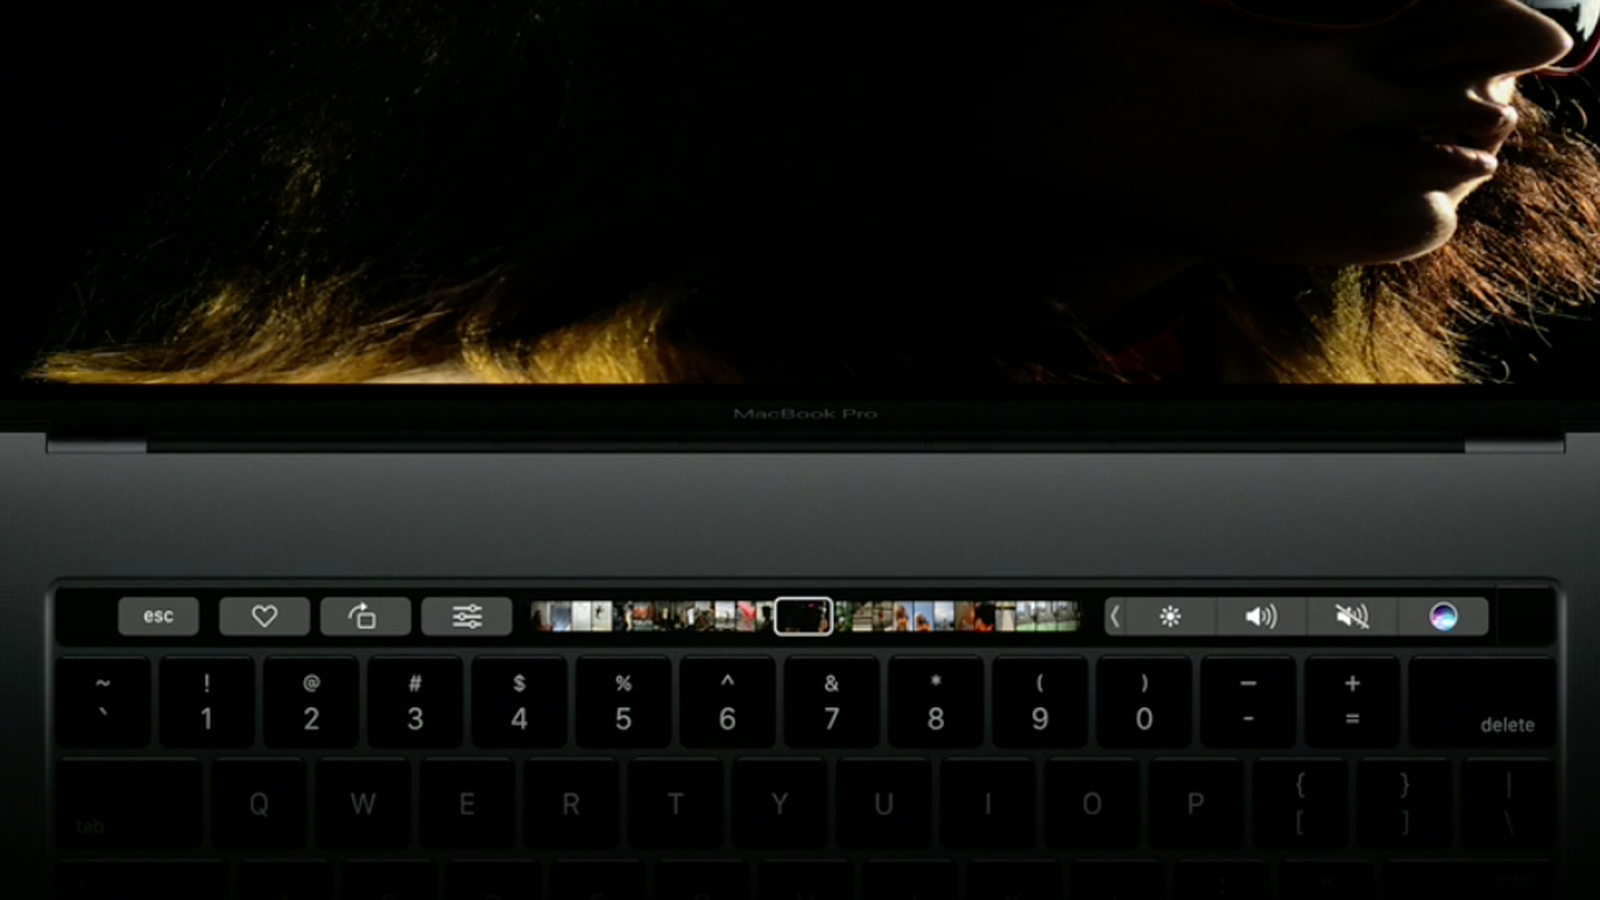 check the post:The New MacBook Pro Touch Bar for a description of the image